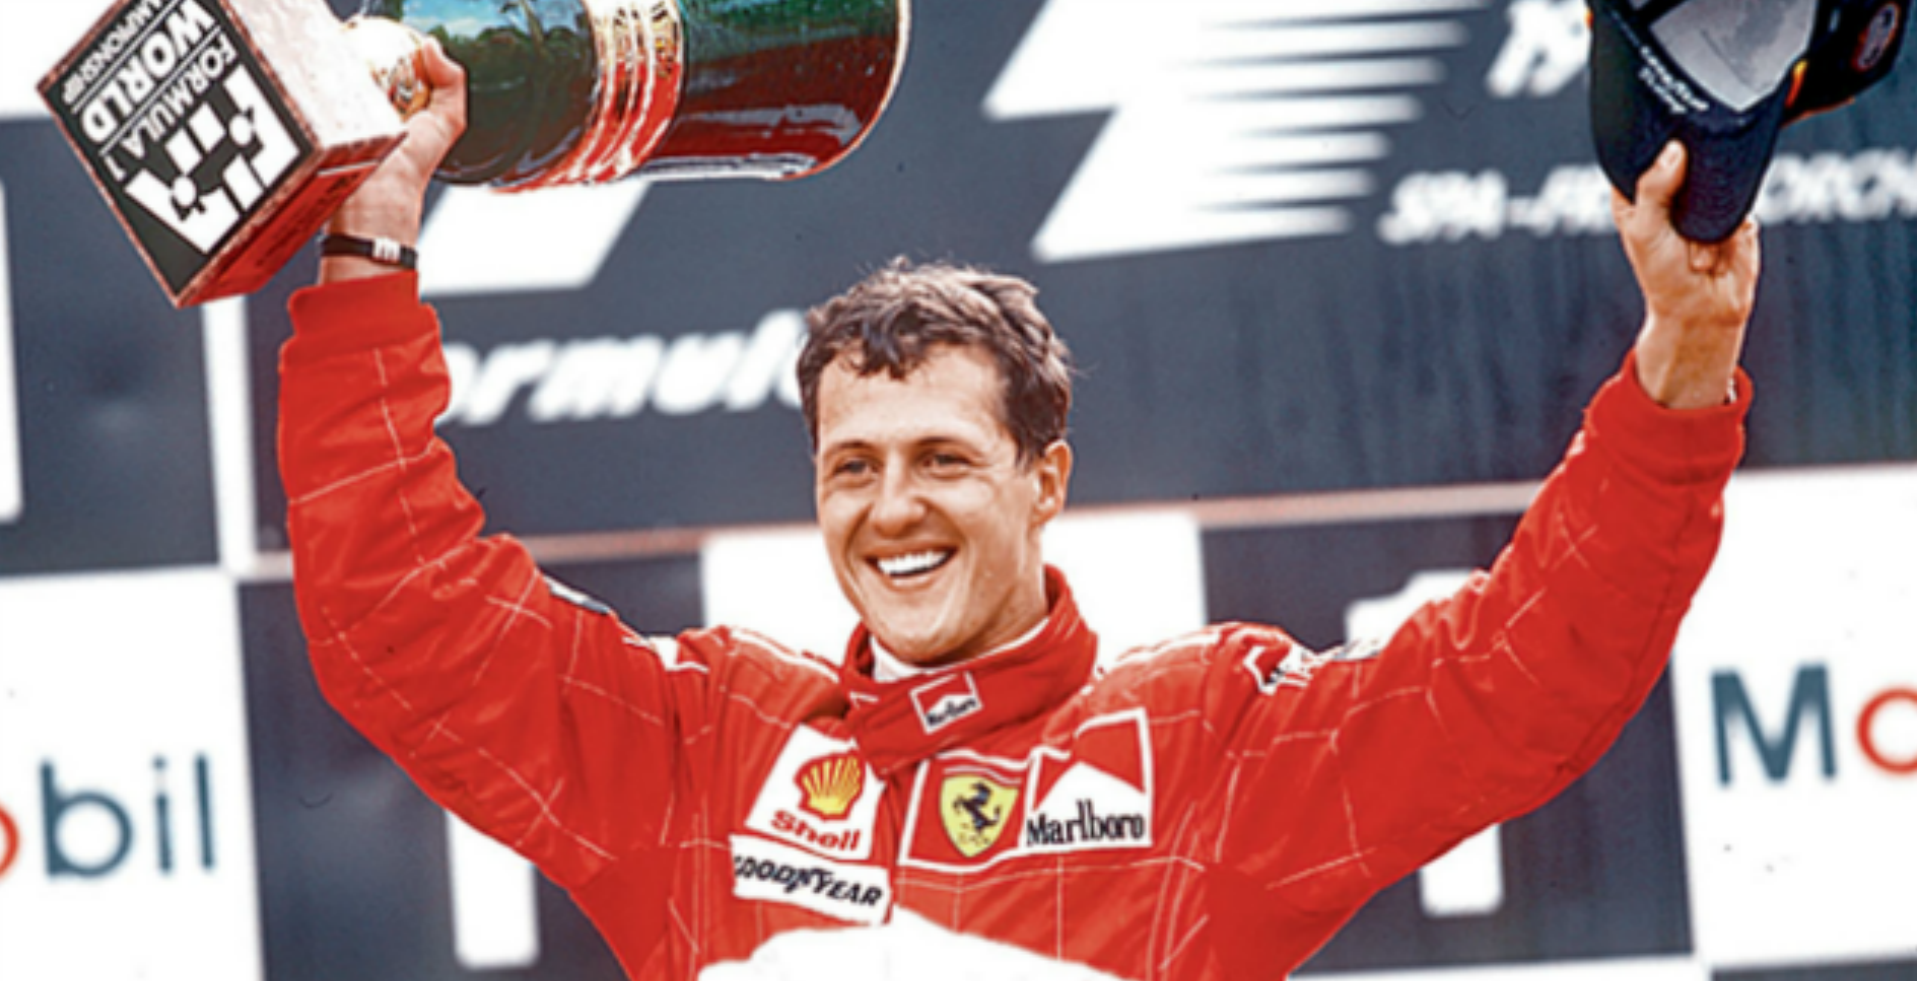 michael schumacher - photo #21